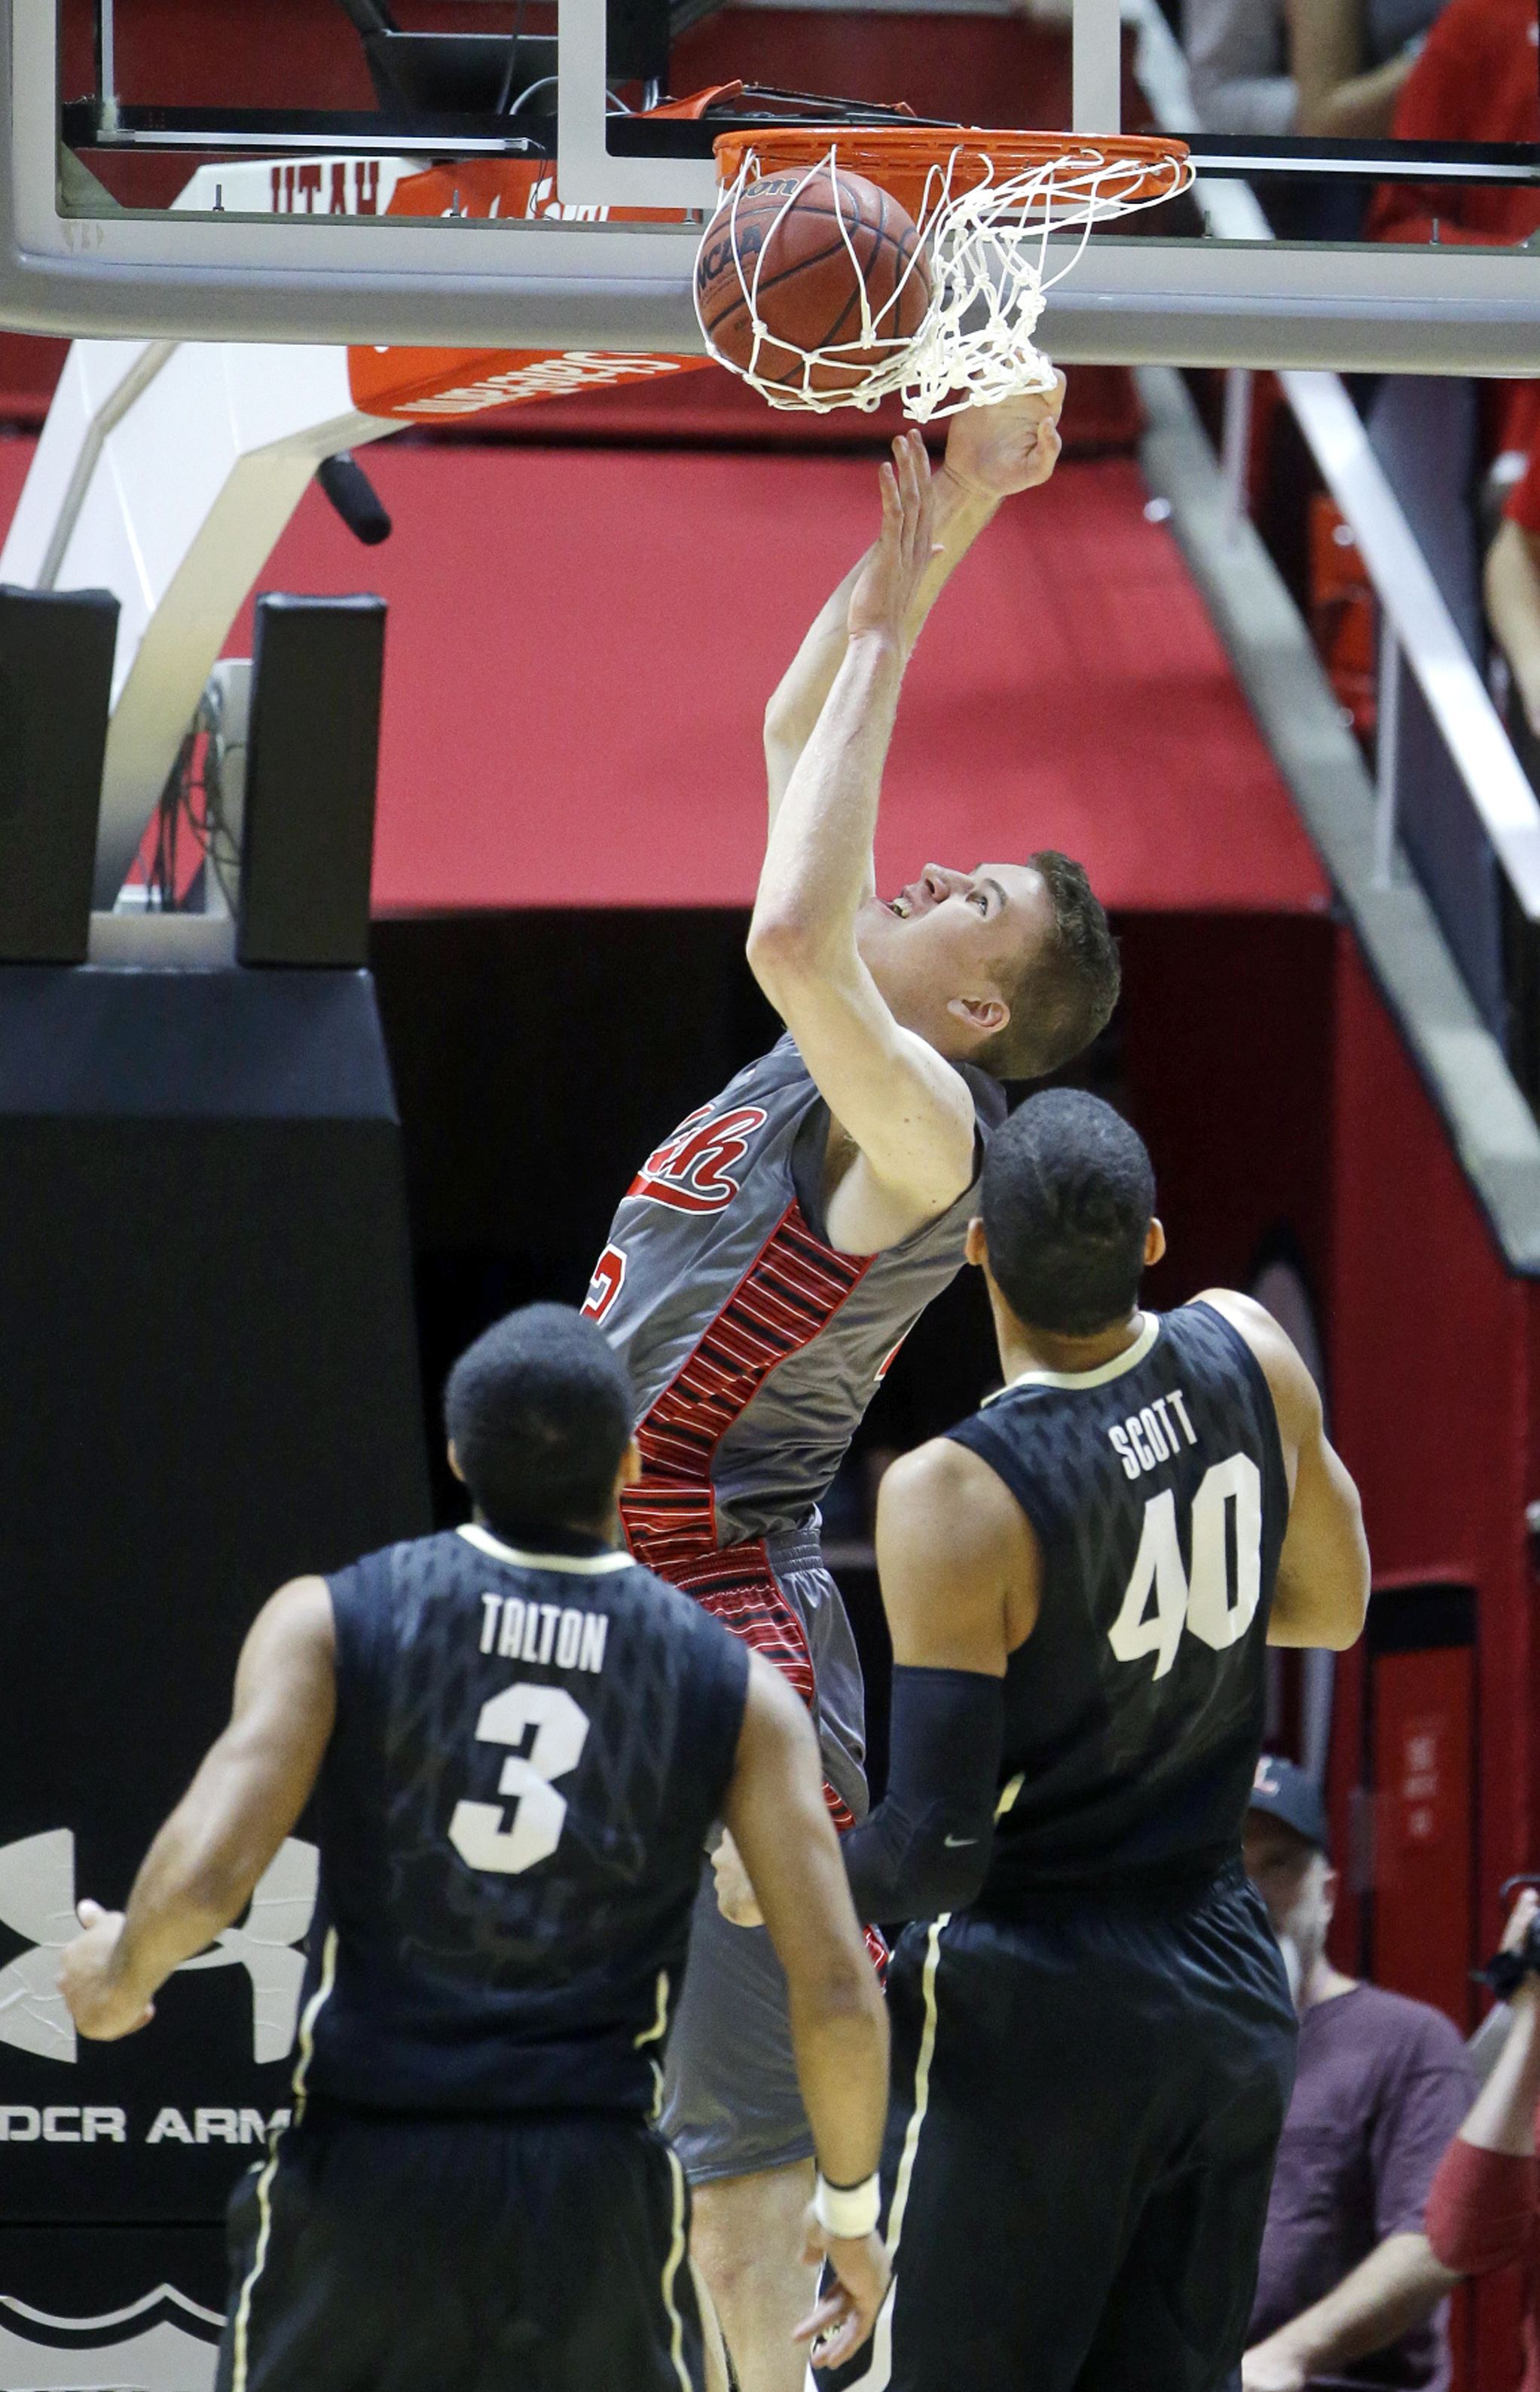 Utah forward Jakob Poeltl, top, dunks the ball as Colorado's Xavier Talton (3) and Josh Scott (40) look on during the first half in an NCAA basketball game Saturday, March 5, 2016, in Salt Lake City. (AP Photo/Rick Bowmer)